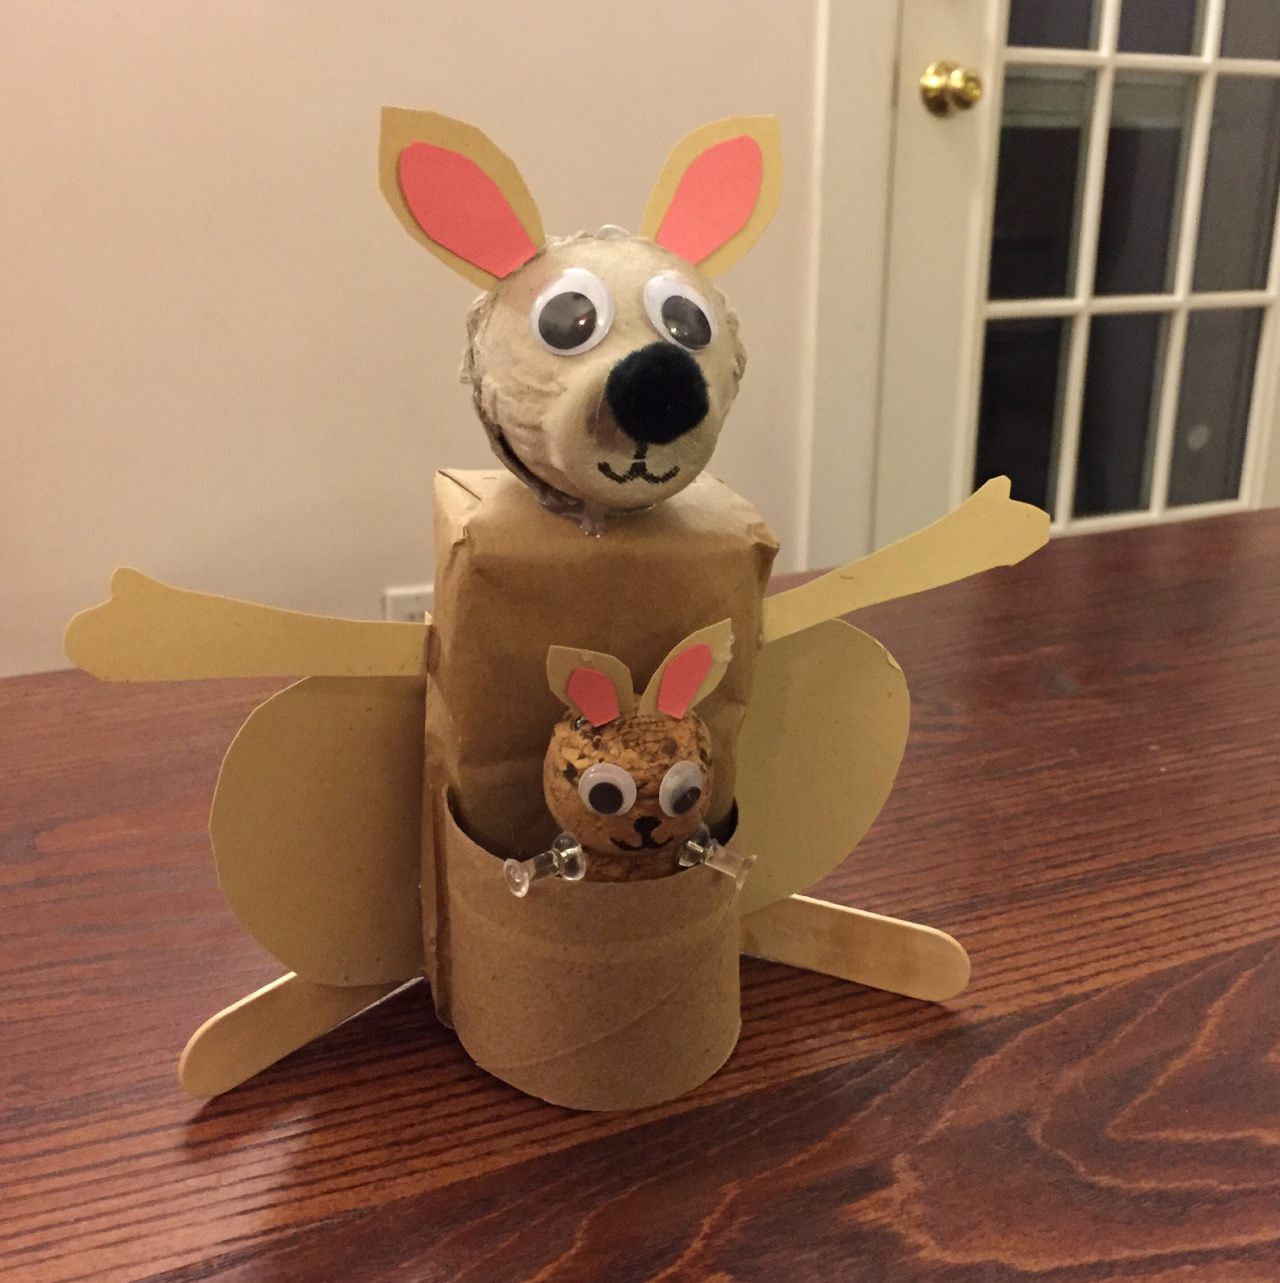 Class 13: Kangarooooo!   I thought the kids might like something involving a baby, so I hopped on this.   Juice box   Brown paper bag to wrap the juice box   Egg carton for the head  Champagne cork for the baby (No, I did not drink 11 bottles of Champagne — they're from wine store across the street)  Thumbtacks for baby's arms  Toilet paper roll for the pouch  Popsicle sticks